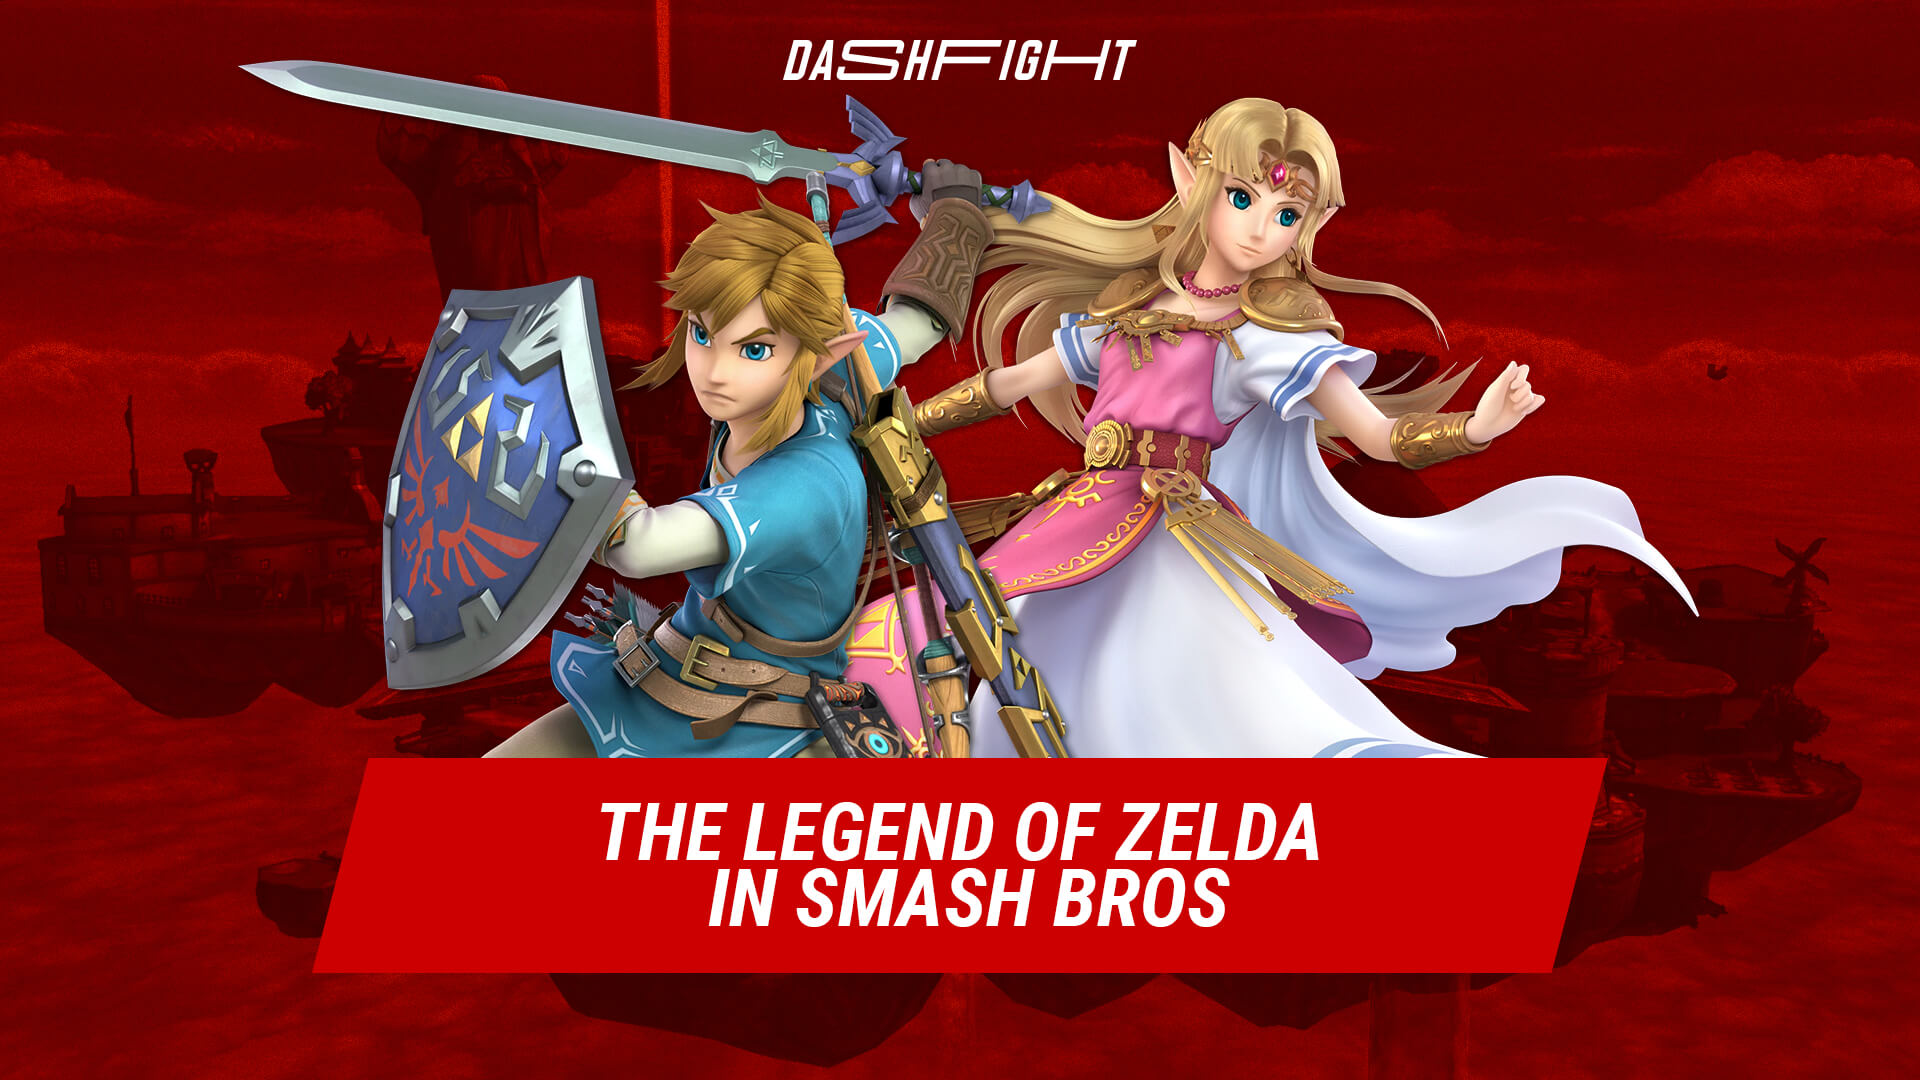 The Legend of Zelda in Smash Bros - All You Need to Know